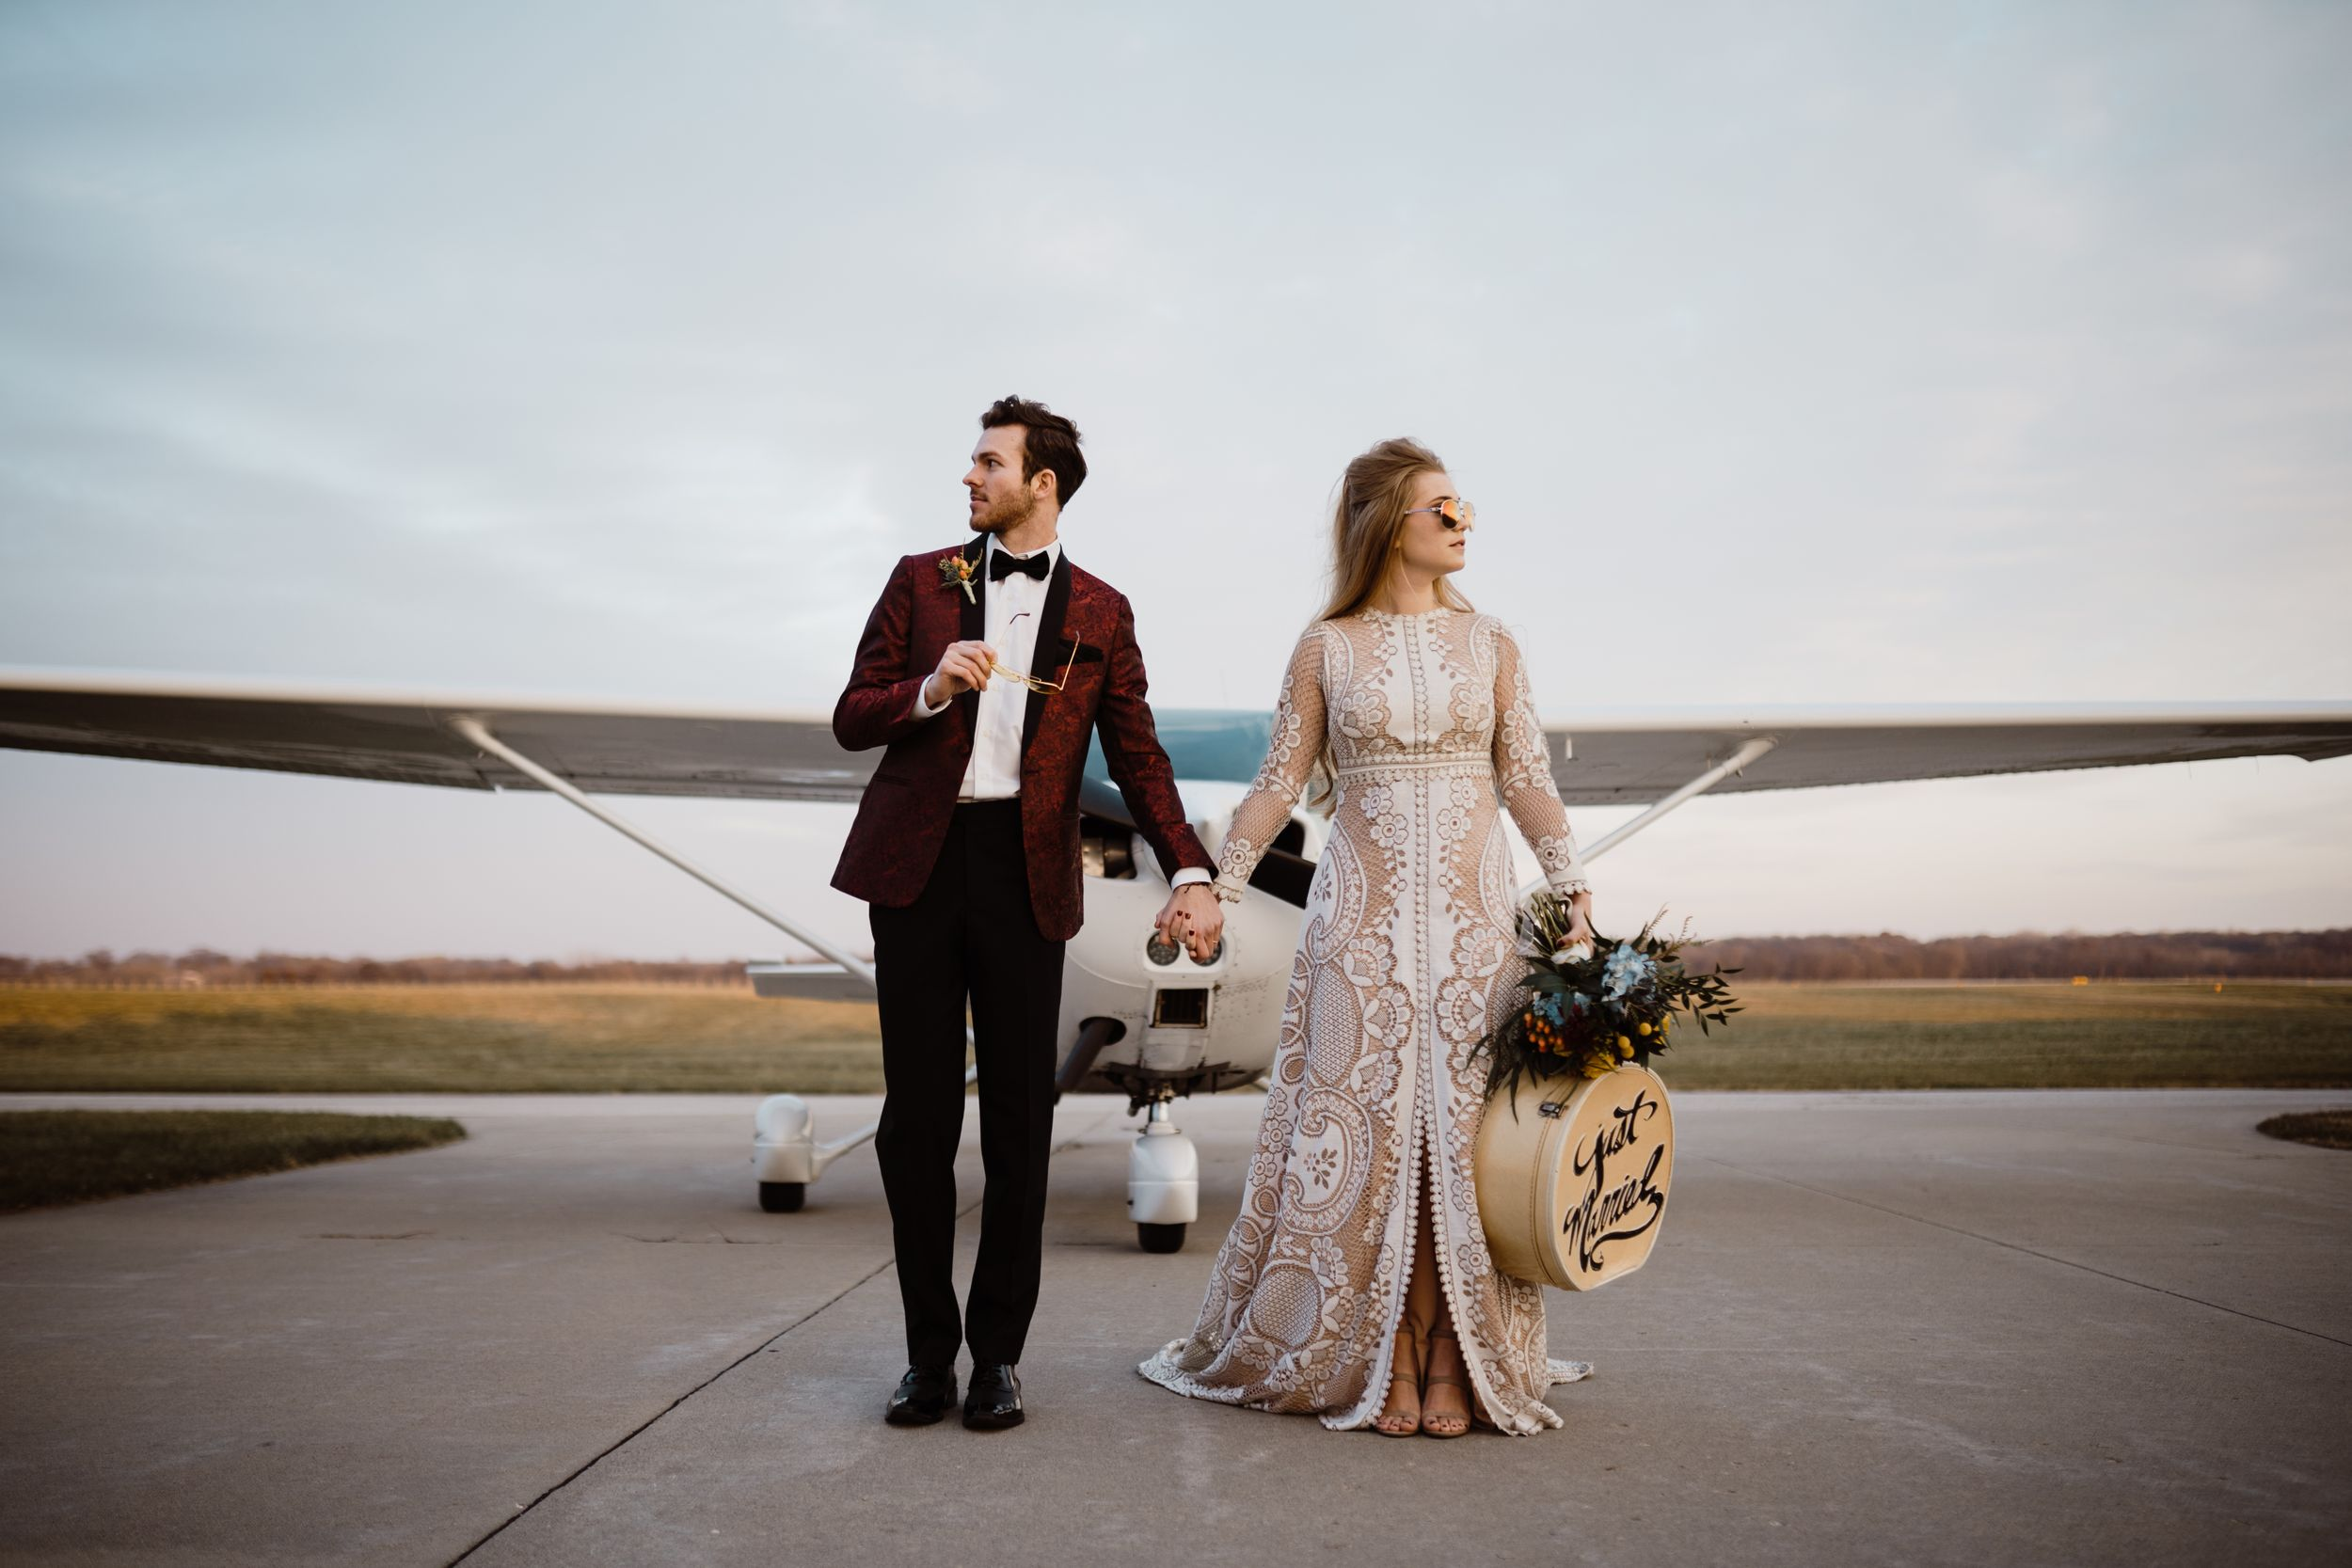 bride-groom-standing-in-front-of-plane-ankeny-iowa-raelyn-ramey-photography